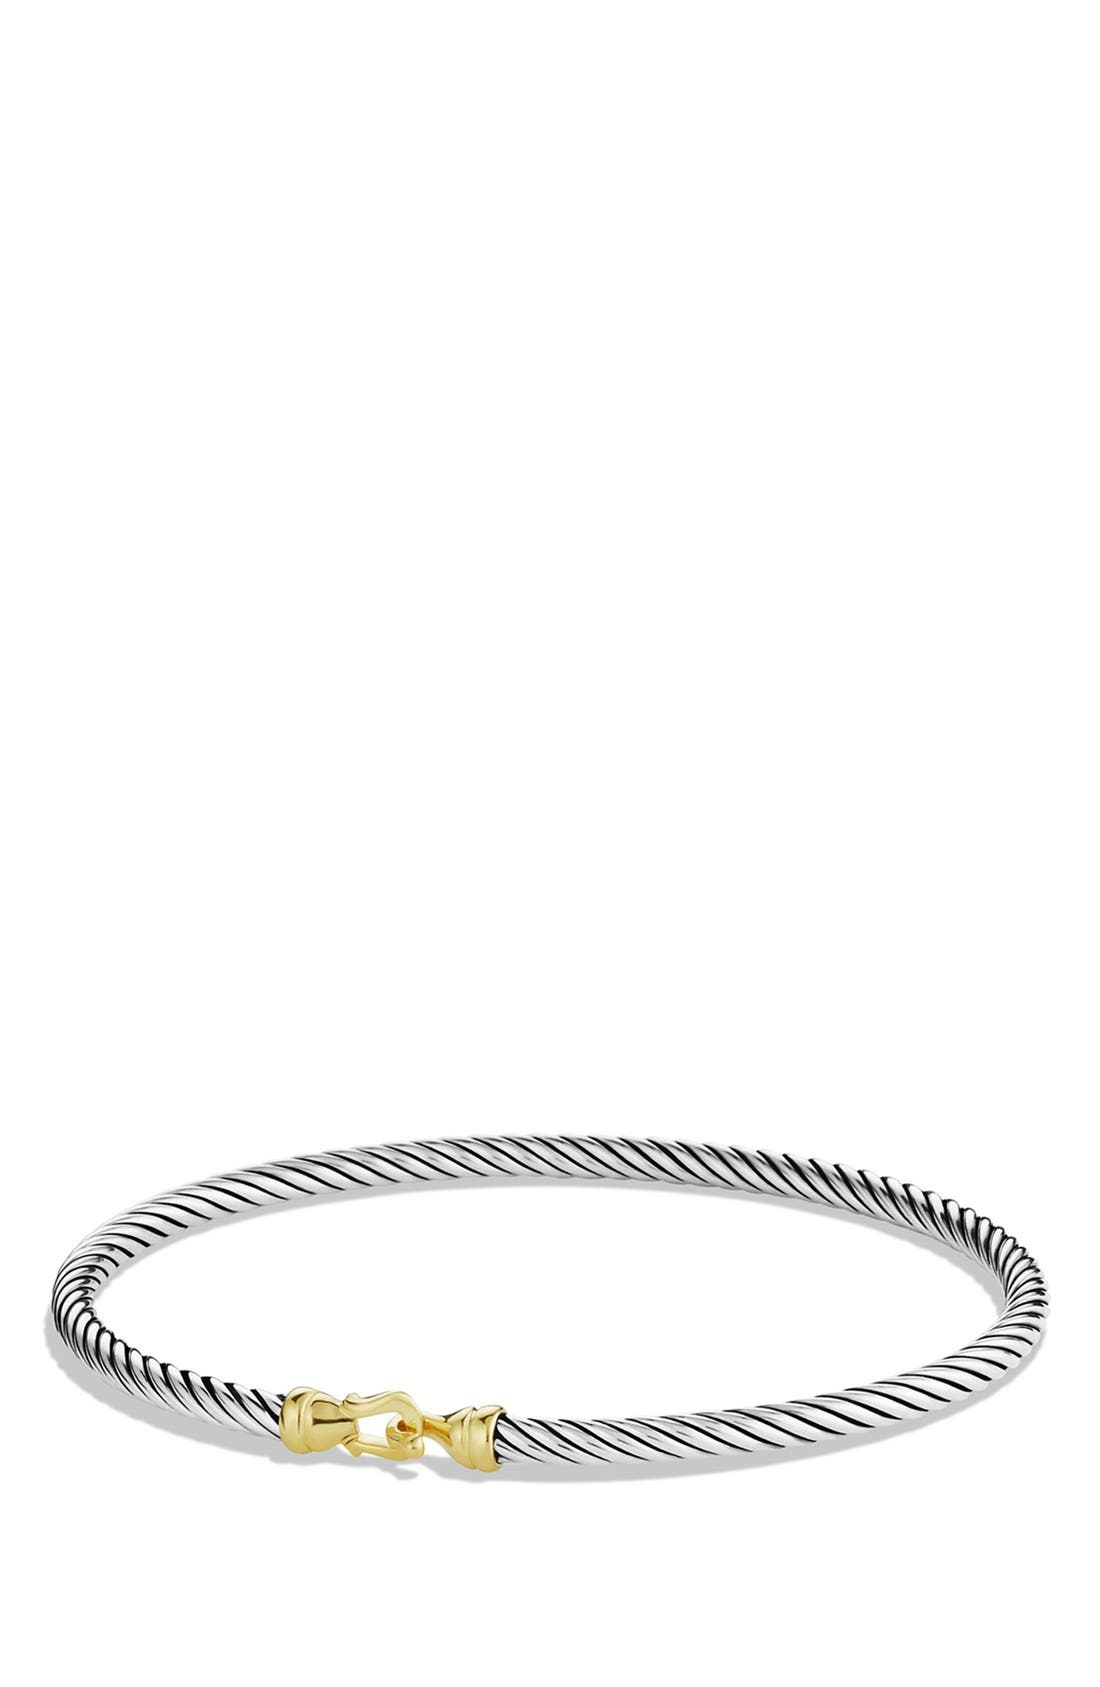 Alternate Image 1 Selected - David Yurman 'Cable Buckle' Two-Tone Bracelet